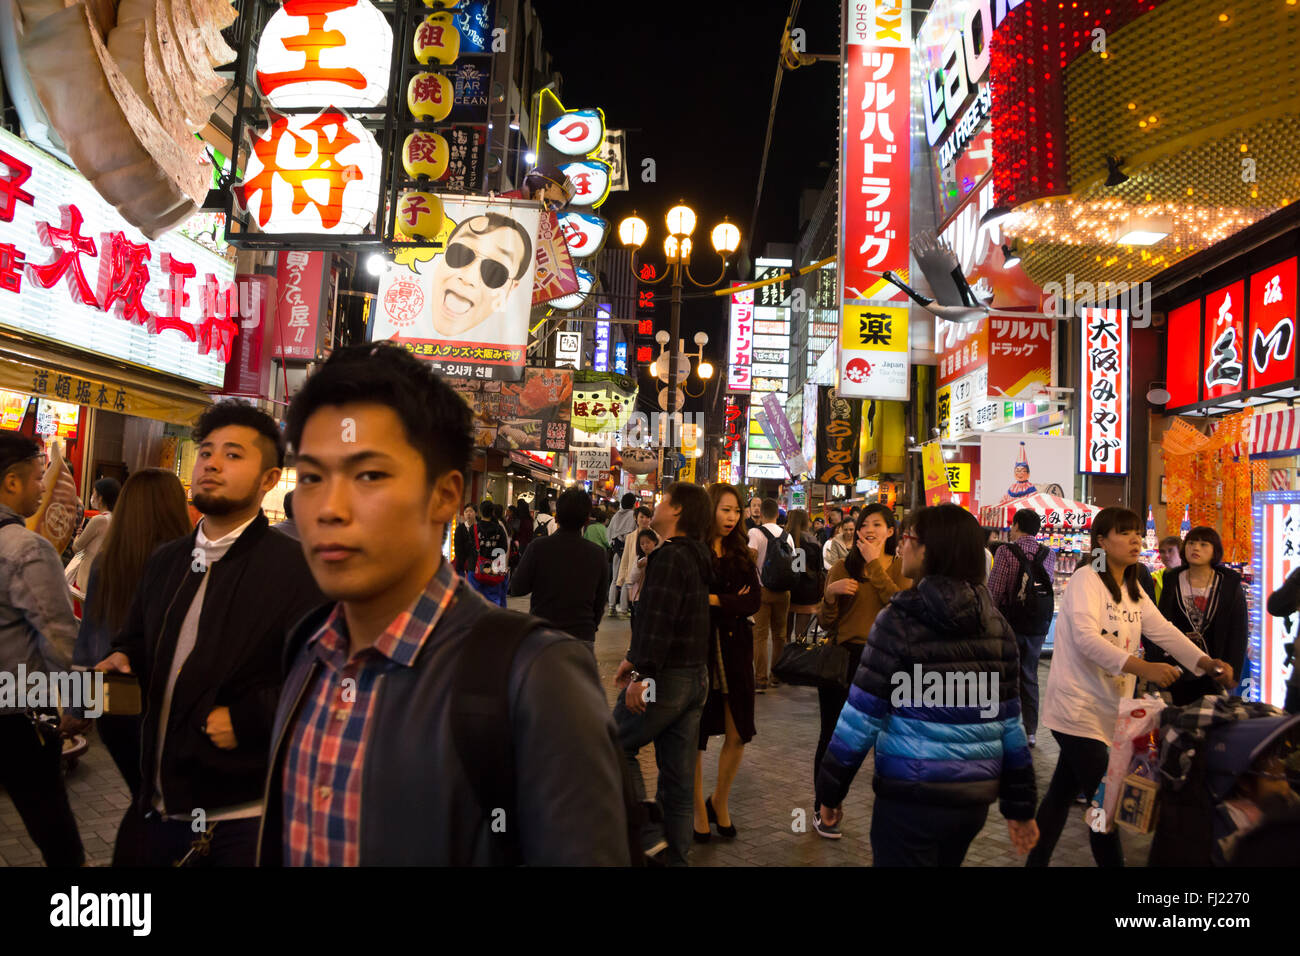 Nightlife in Dotonbori area, Osaka,  Japan - Stock Image